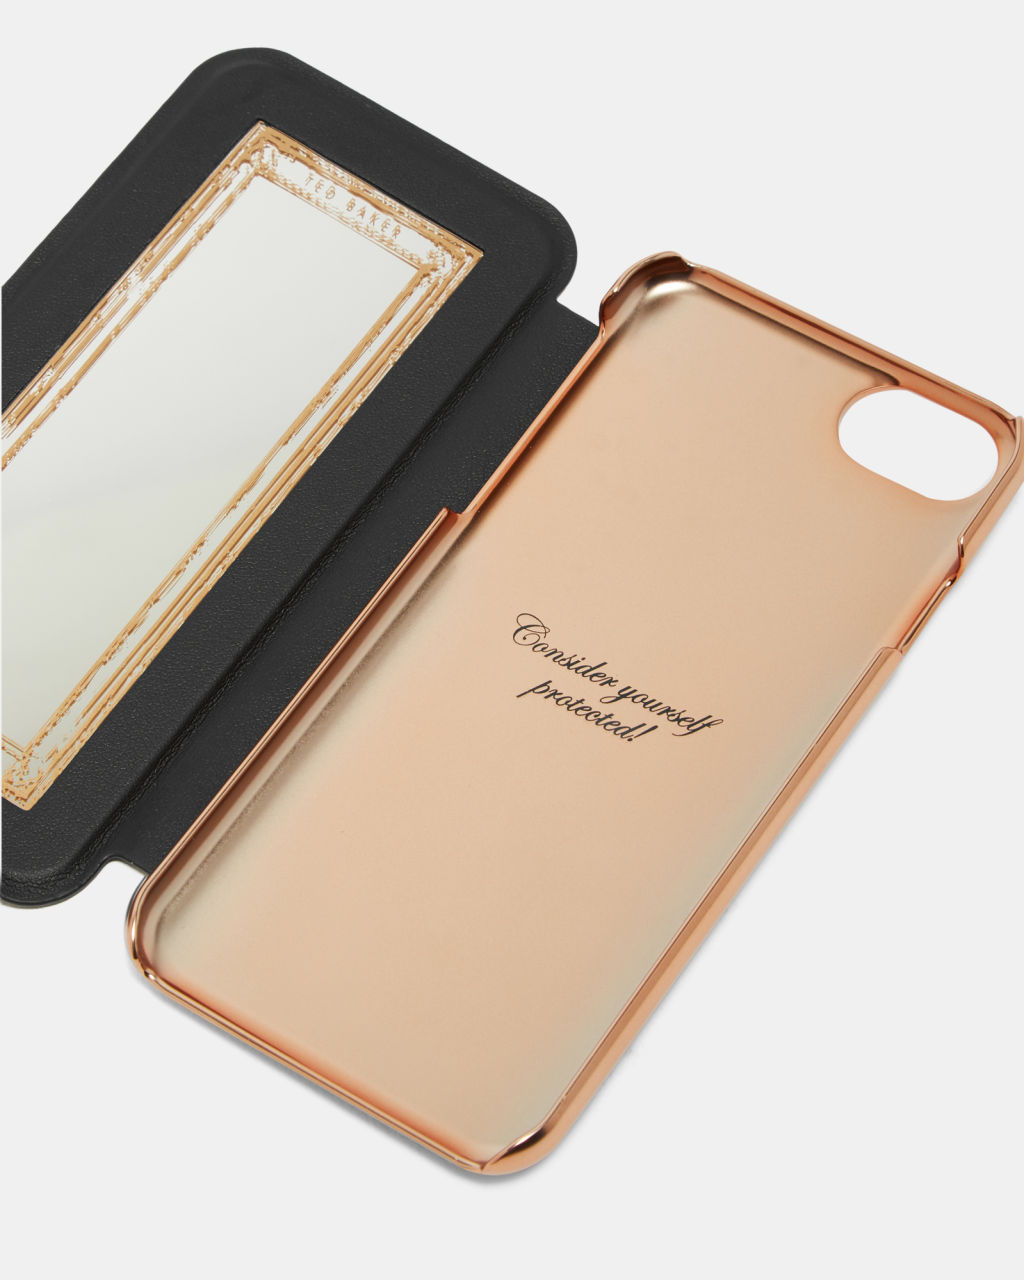 TED BAKER LORINDA Enchanted Dream iPhone 6/6s/7 book case